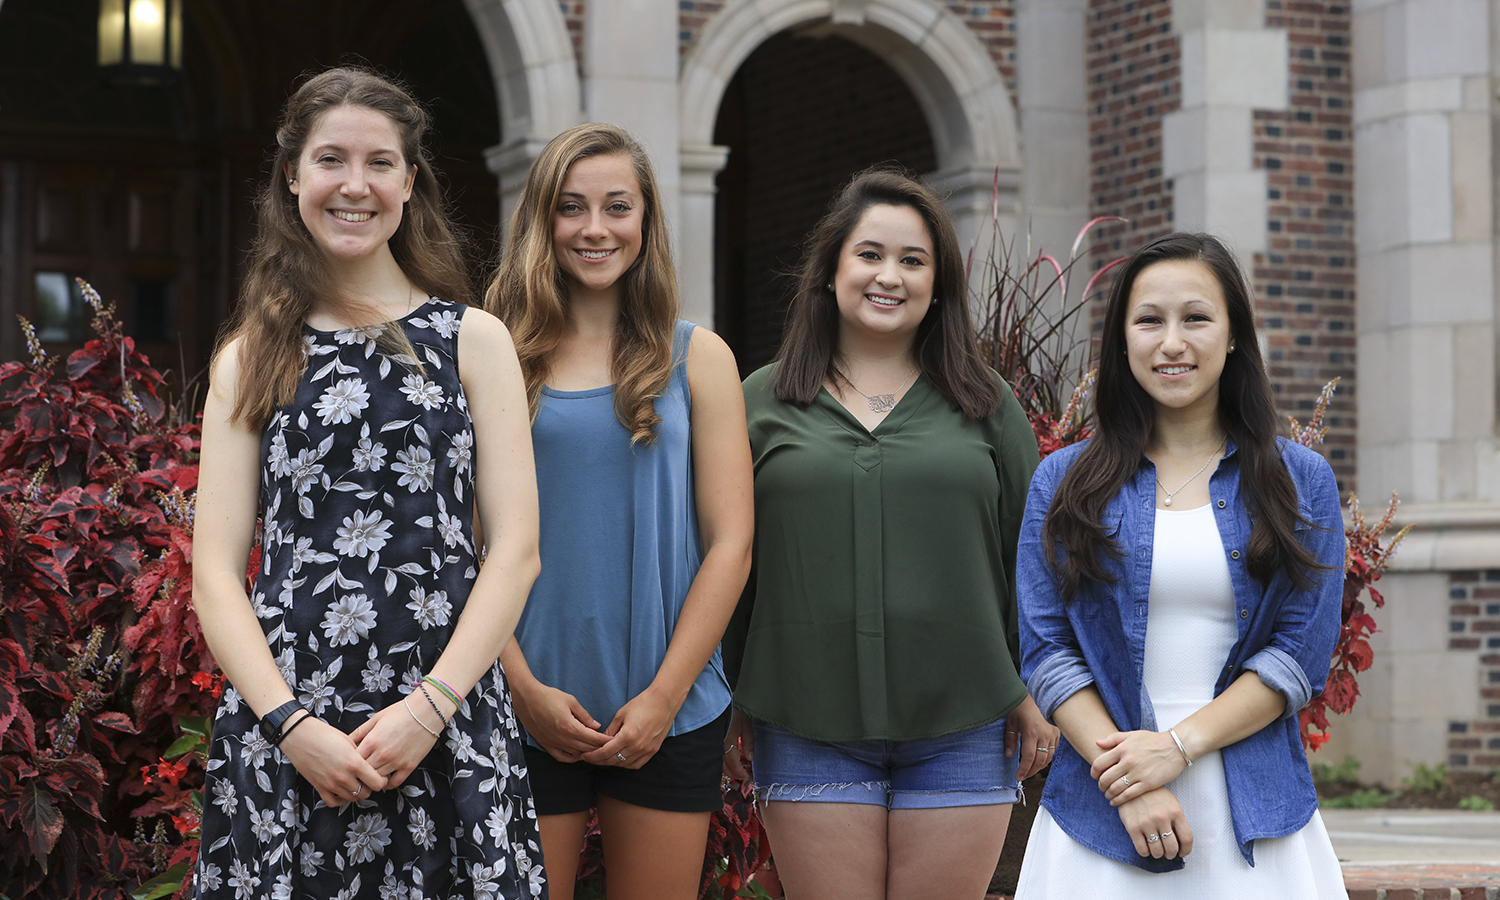 Psi Chi Officers fro 2016-2017. Juliana Heffern, Grace Marola, Bridget Nishimura and Katie Pinkes